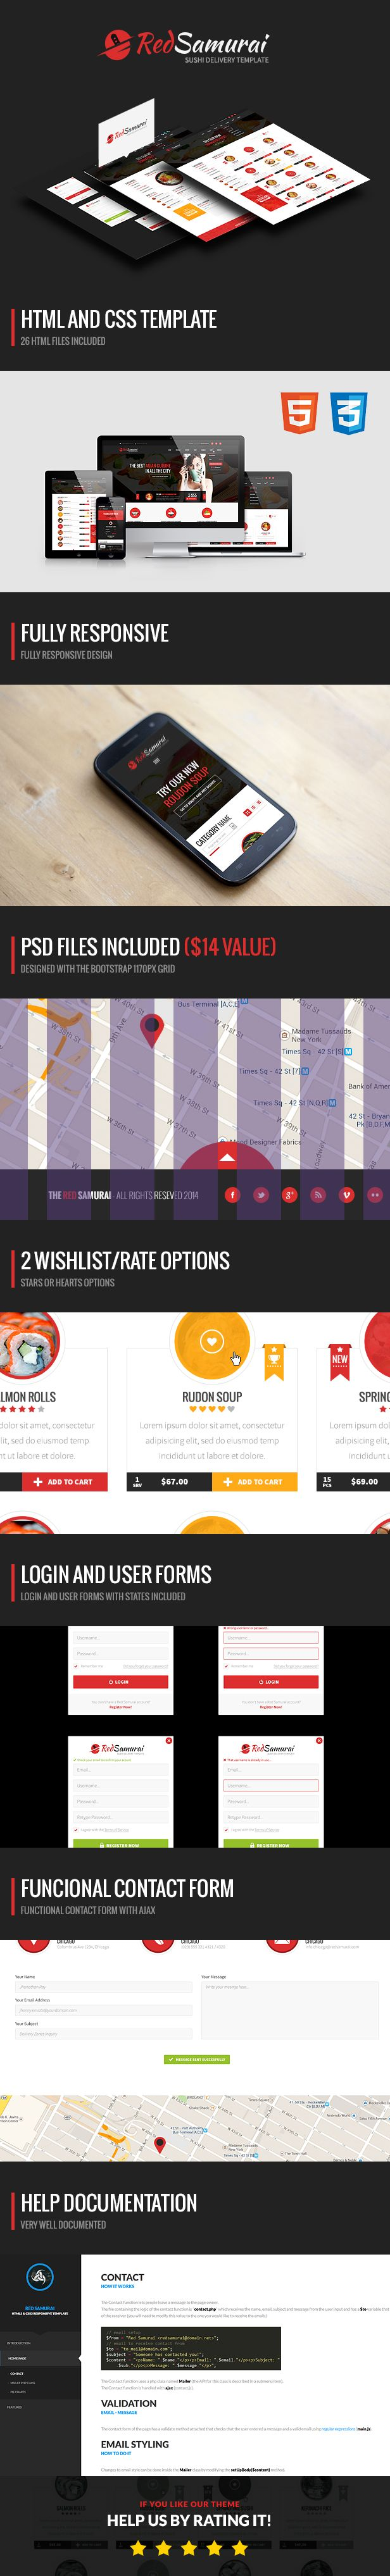 Red Samurai HTML5 and CSS3 Responsive Template - 8